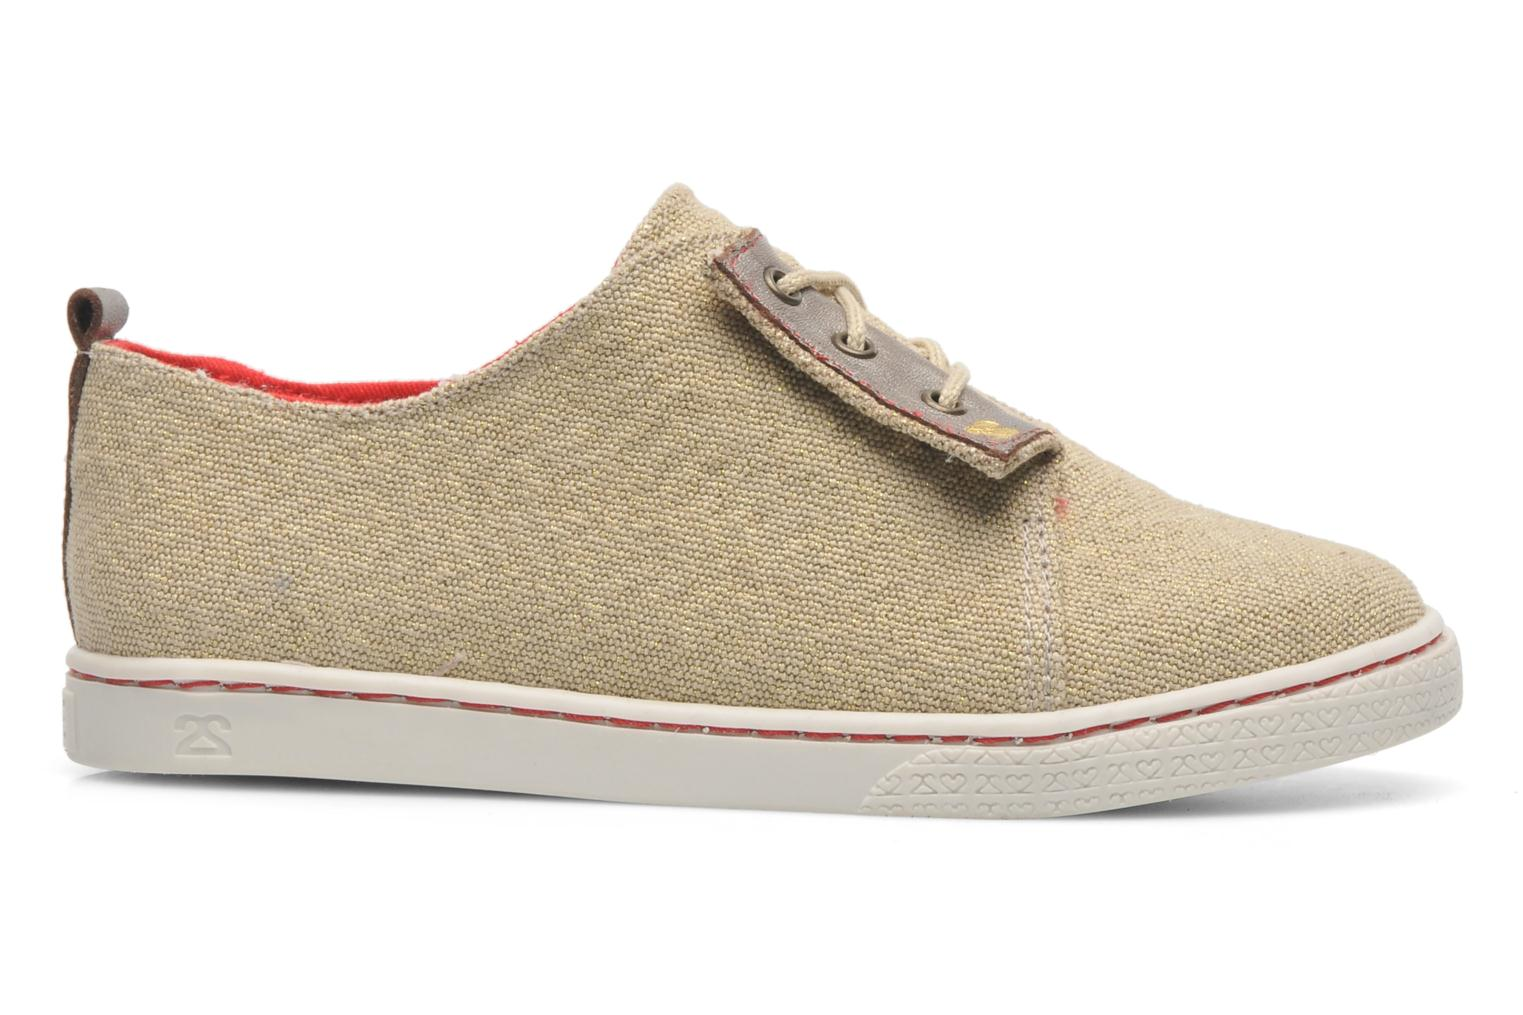 Sneakers 2 Side 2S - SWING Beige immagine posteriore